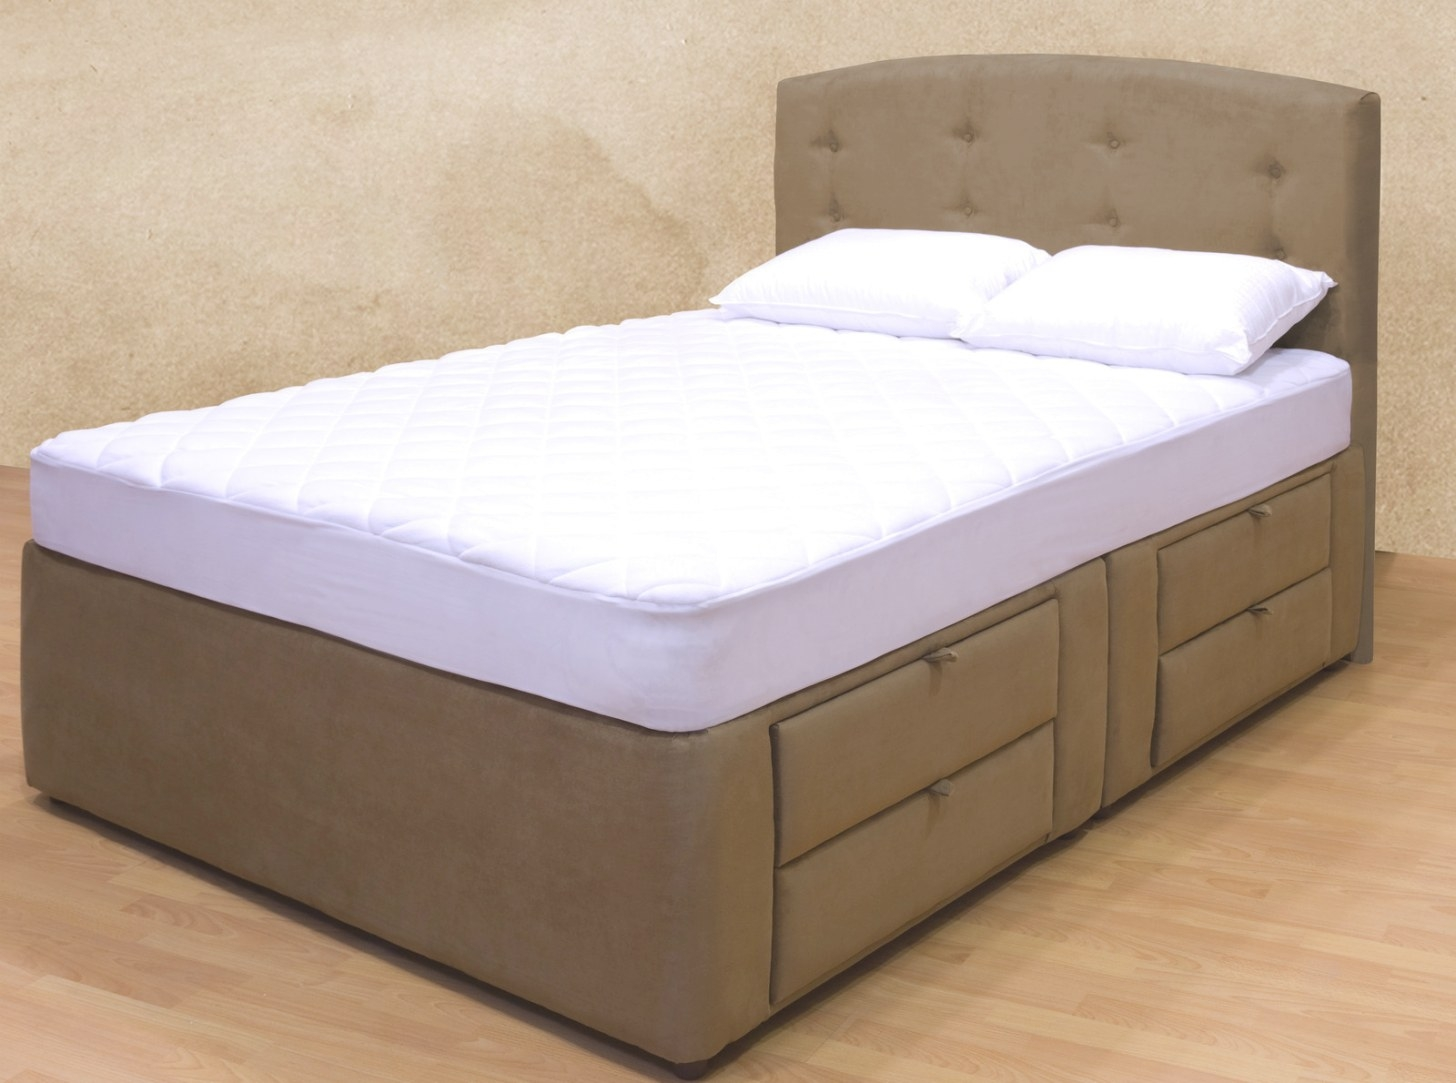 Tiffany 8-Drawer Platform Bed / Storage Mattress Bed pertaining to Platform Bed With Storage